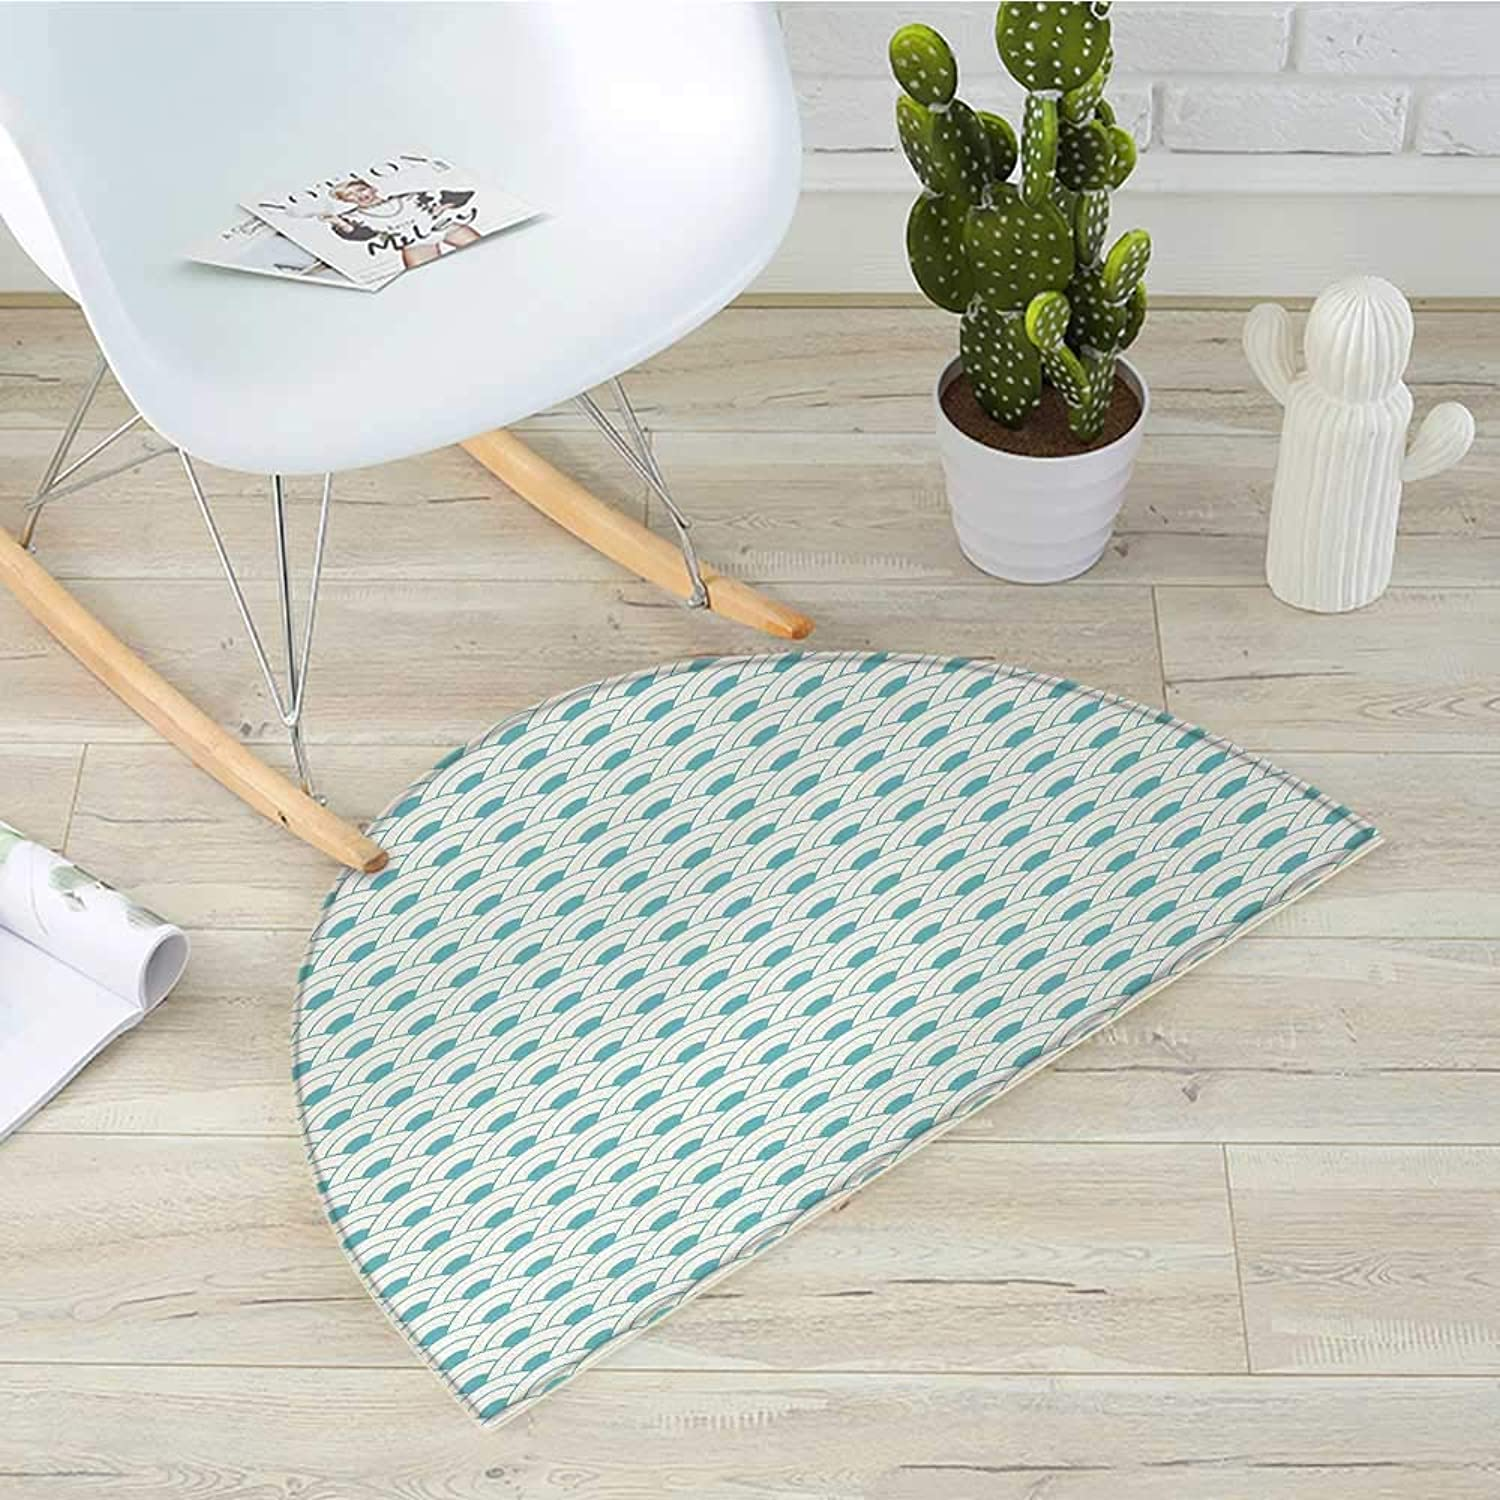 Ocean Semicircular CushionBold Half Circles Sea Inspired Theme Waves Simplistic Retro Design Maritime Print Entry Door Mat H 43.3  xD 64.9  Sky bluee White